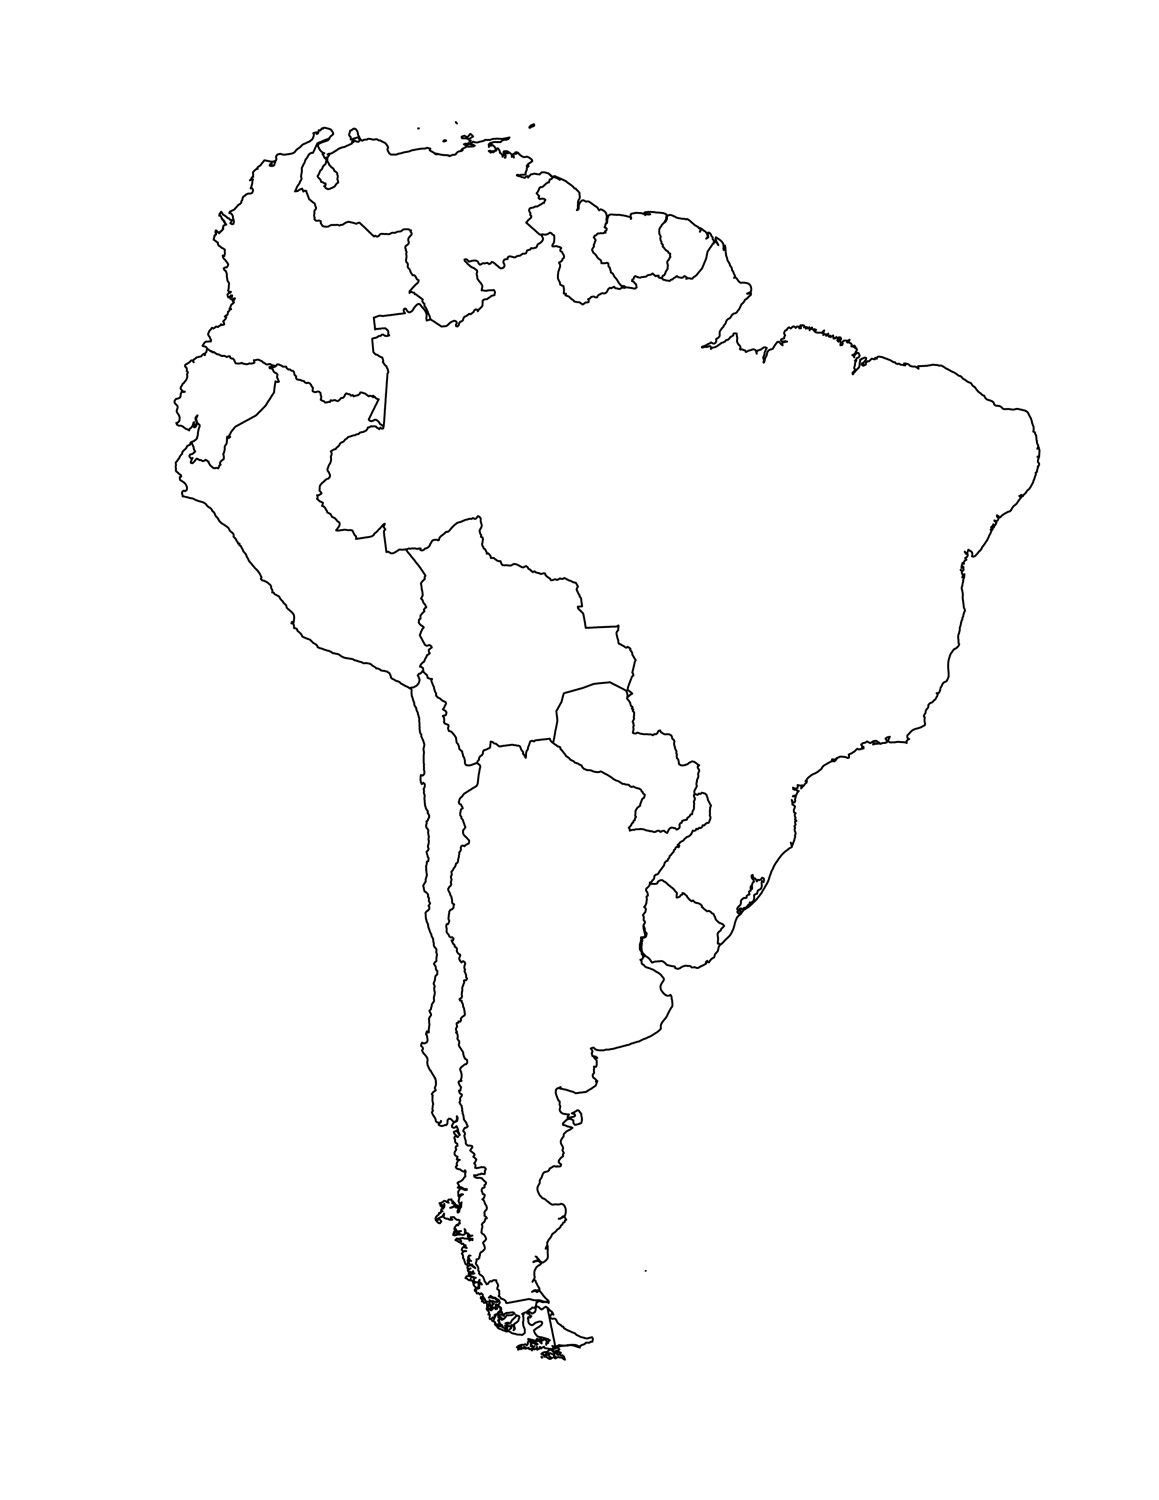 image about Printable Maps of South America named map of south american nations around the world OCC Shoebox South